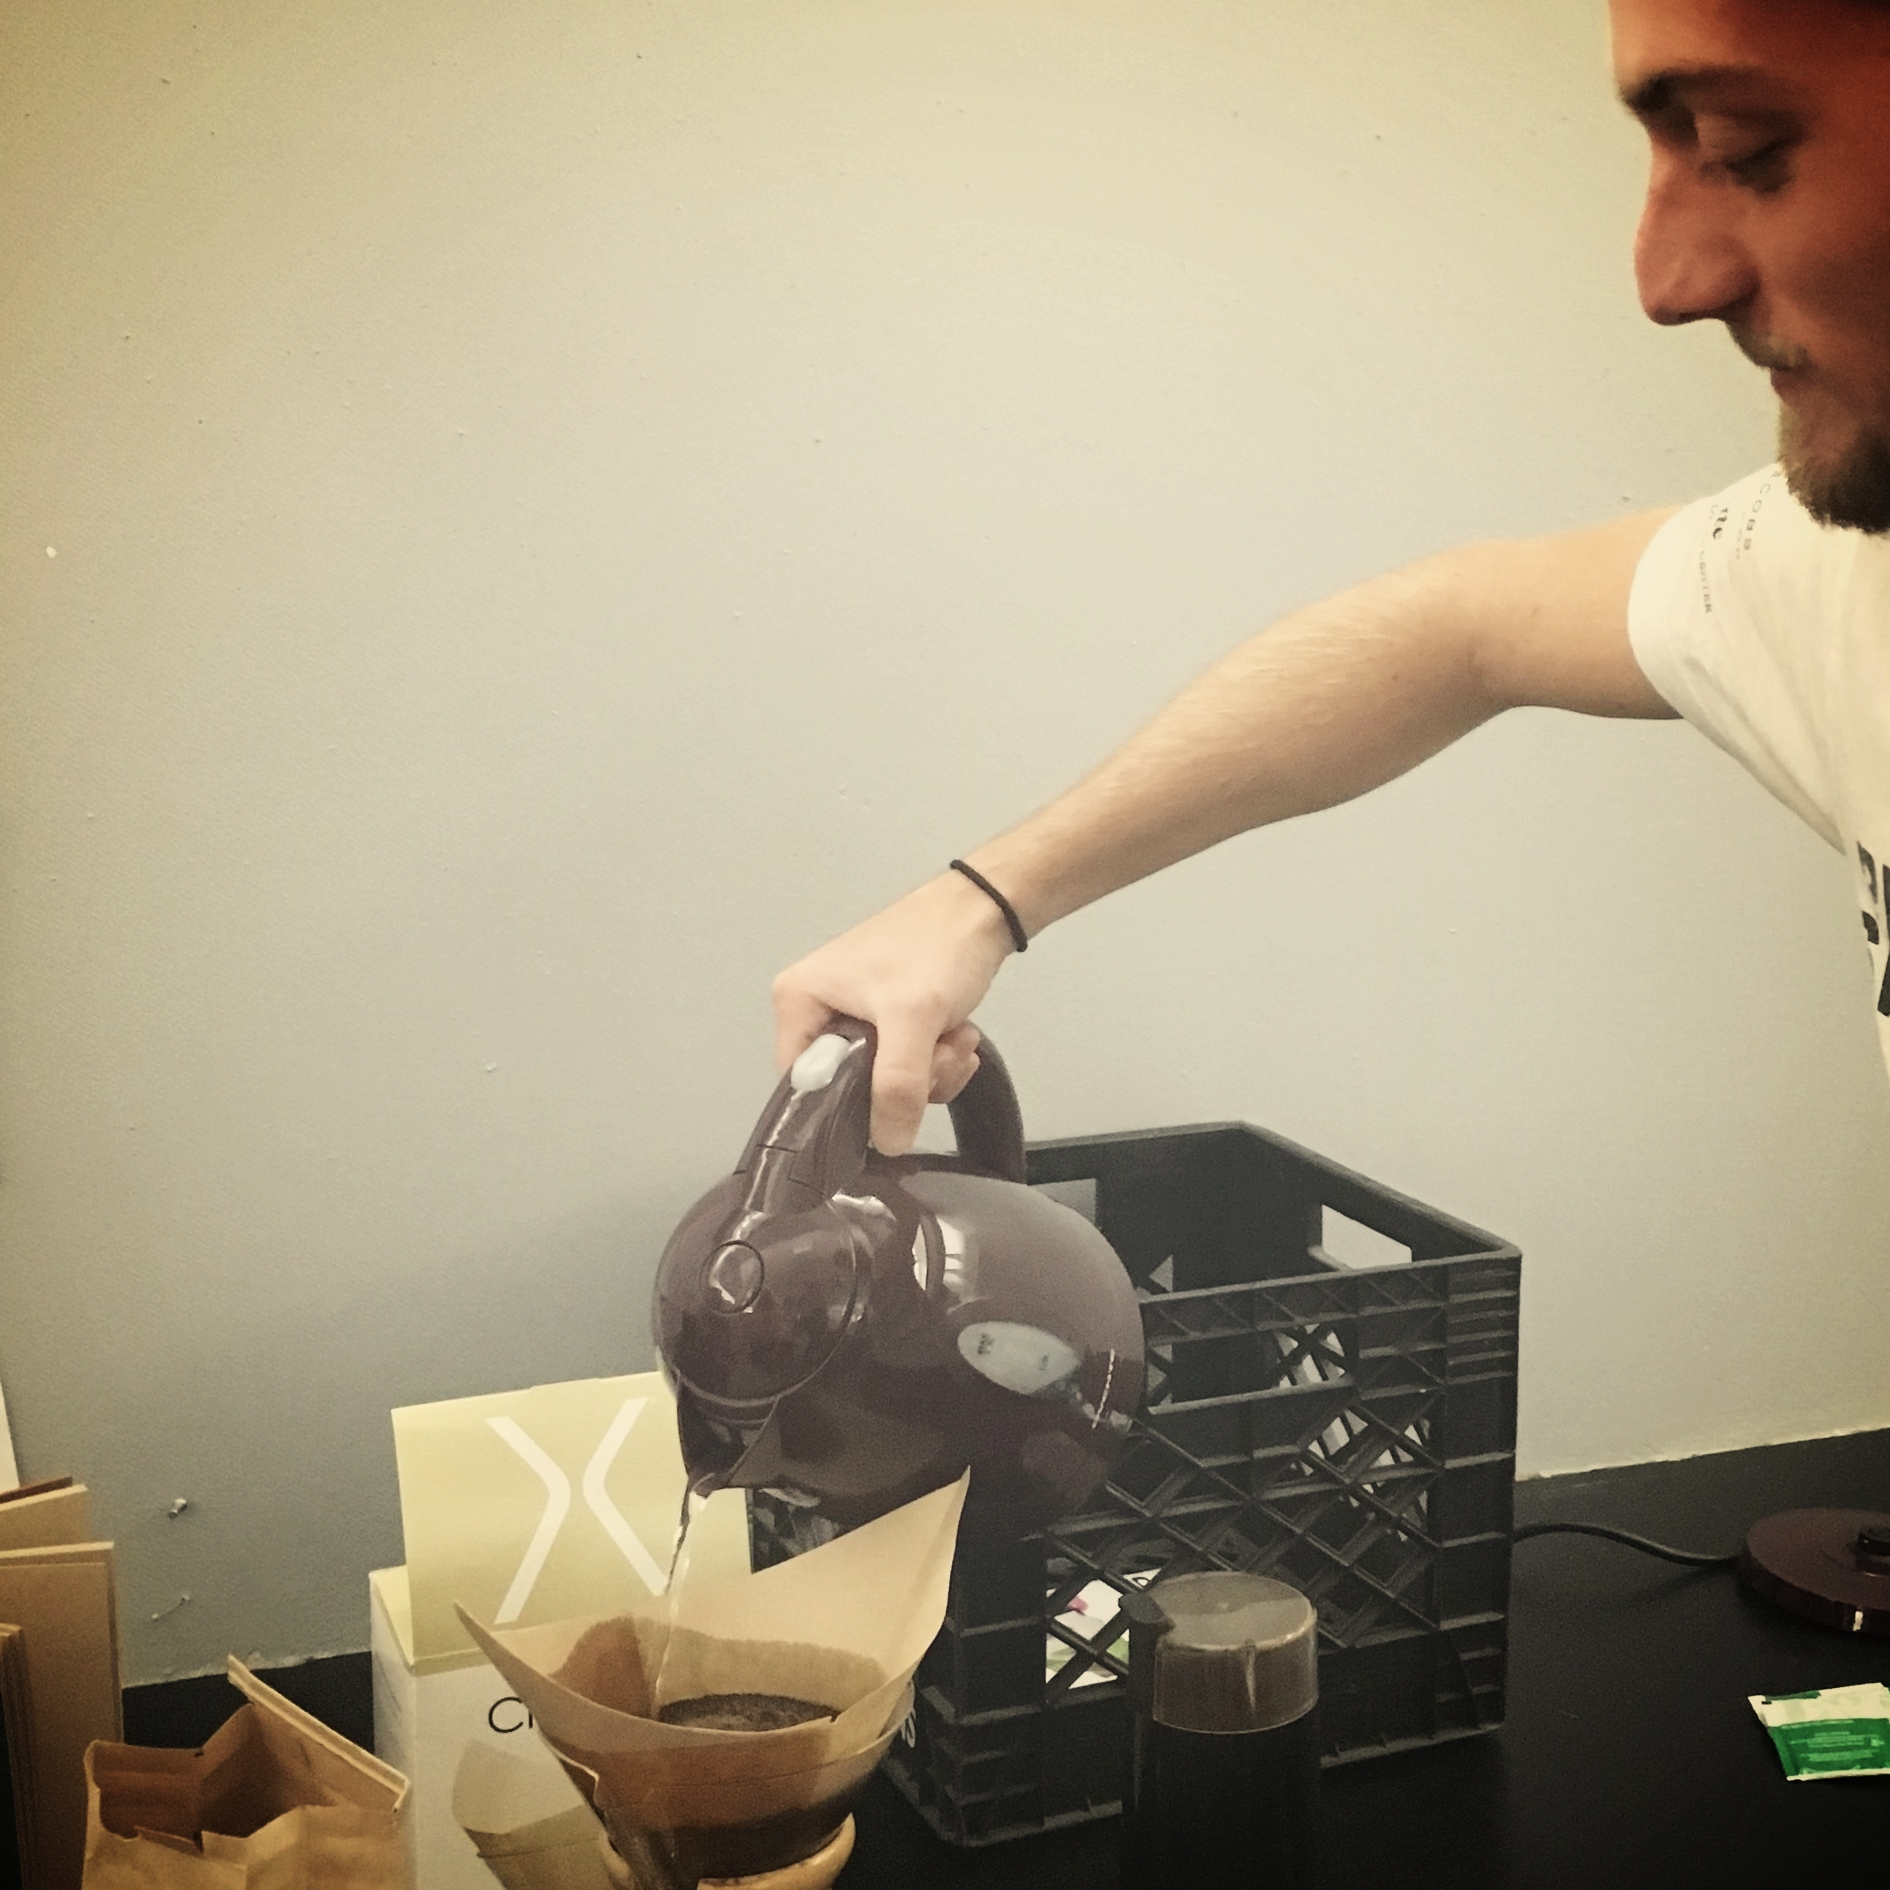 2017 EPD – A seriously resourceful crew. Why buy coffee when we can grind and brew in class?